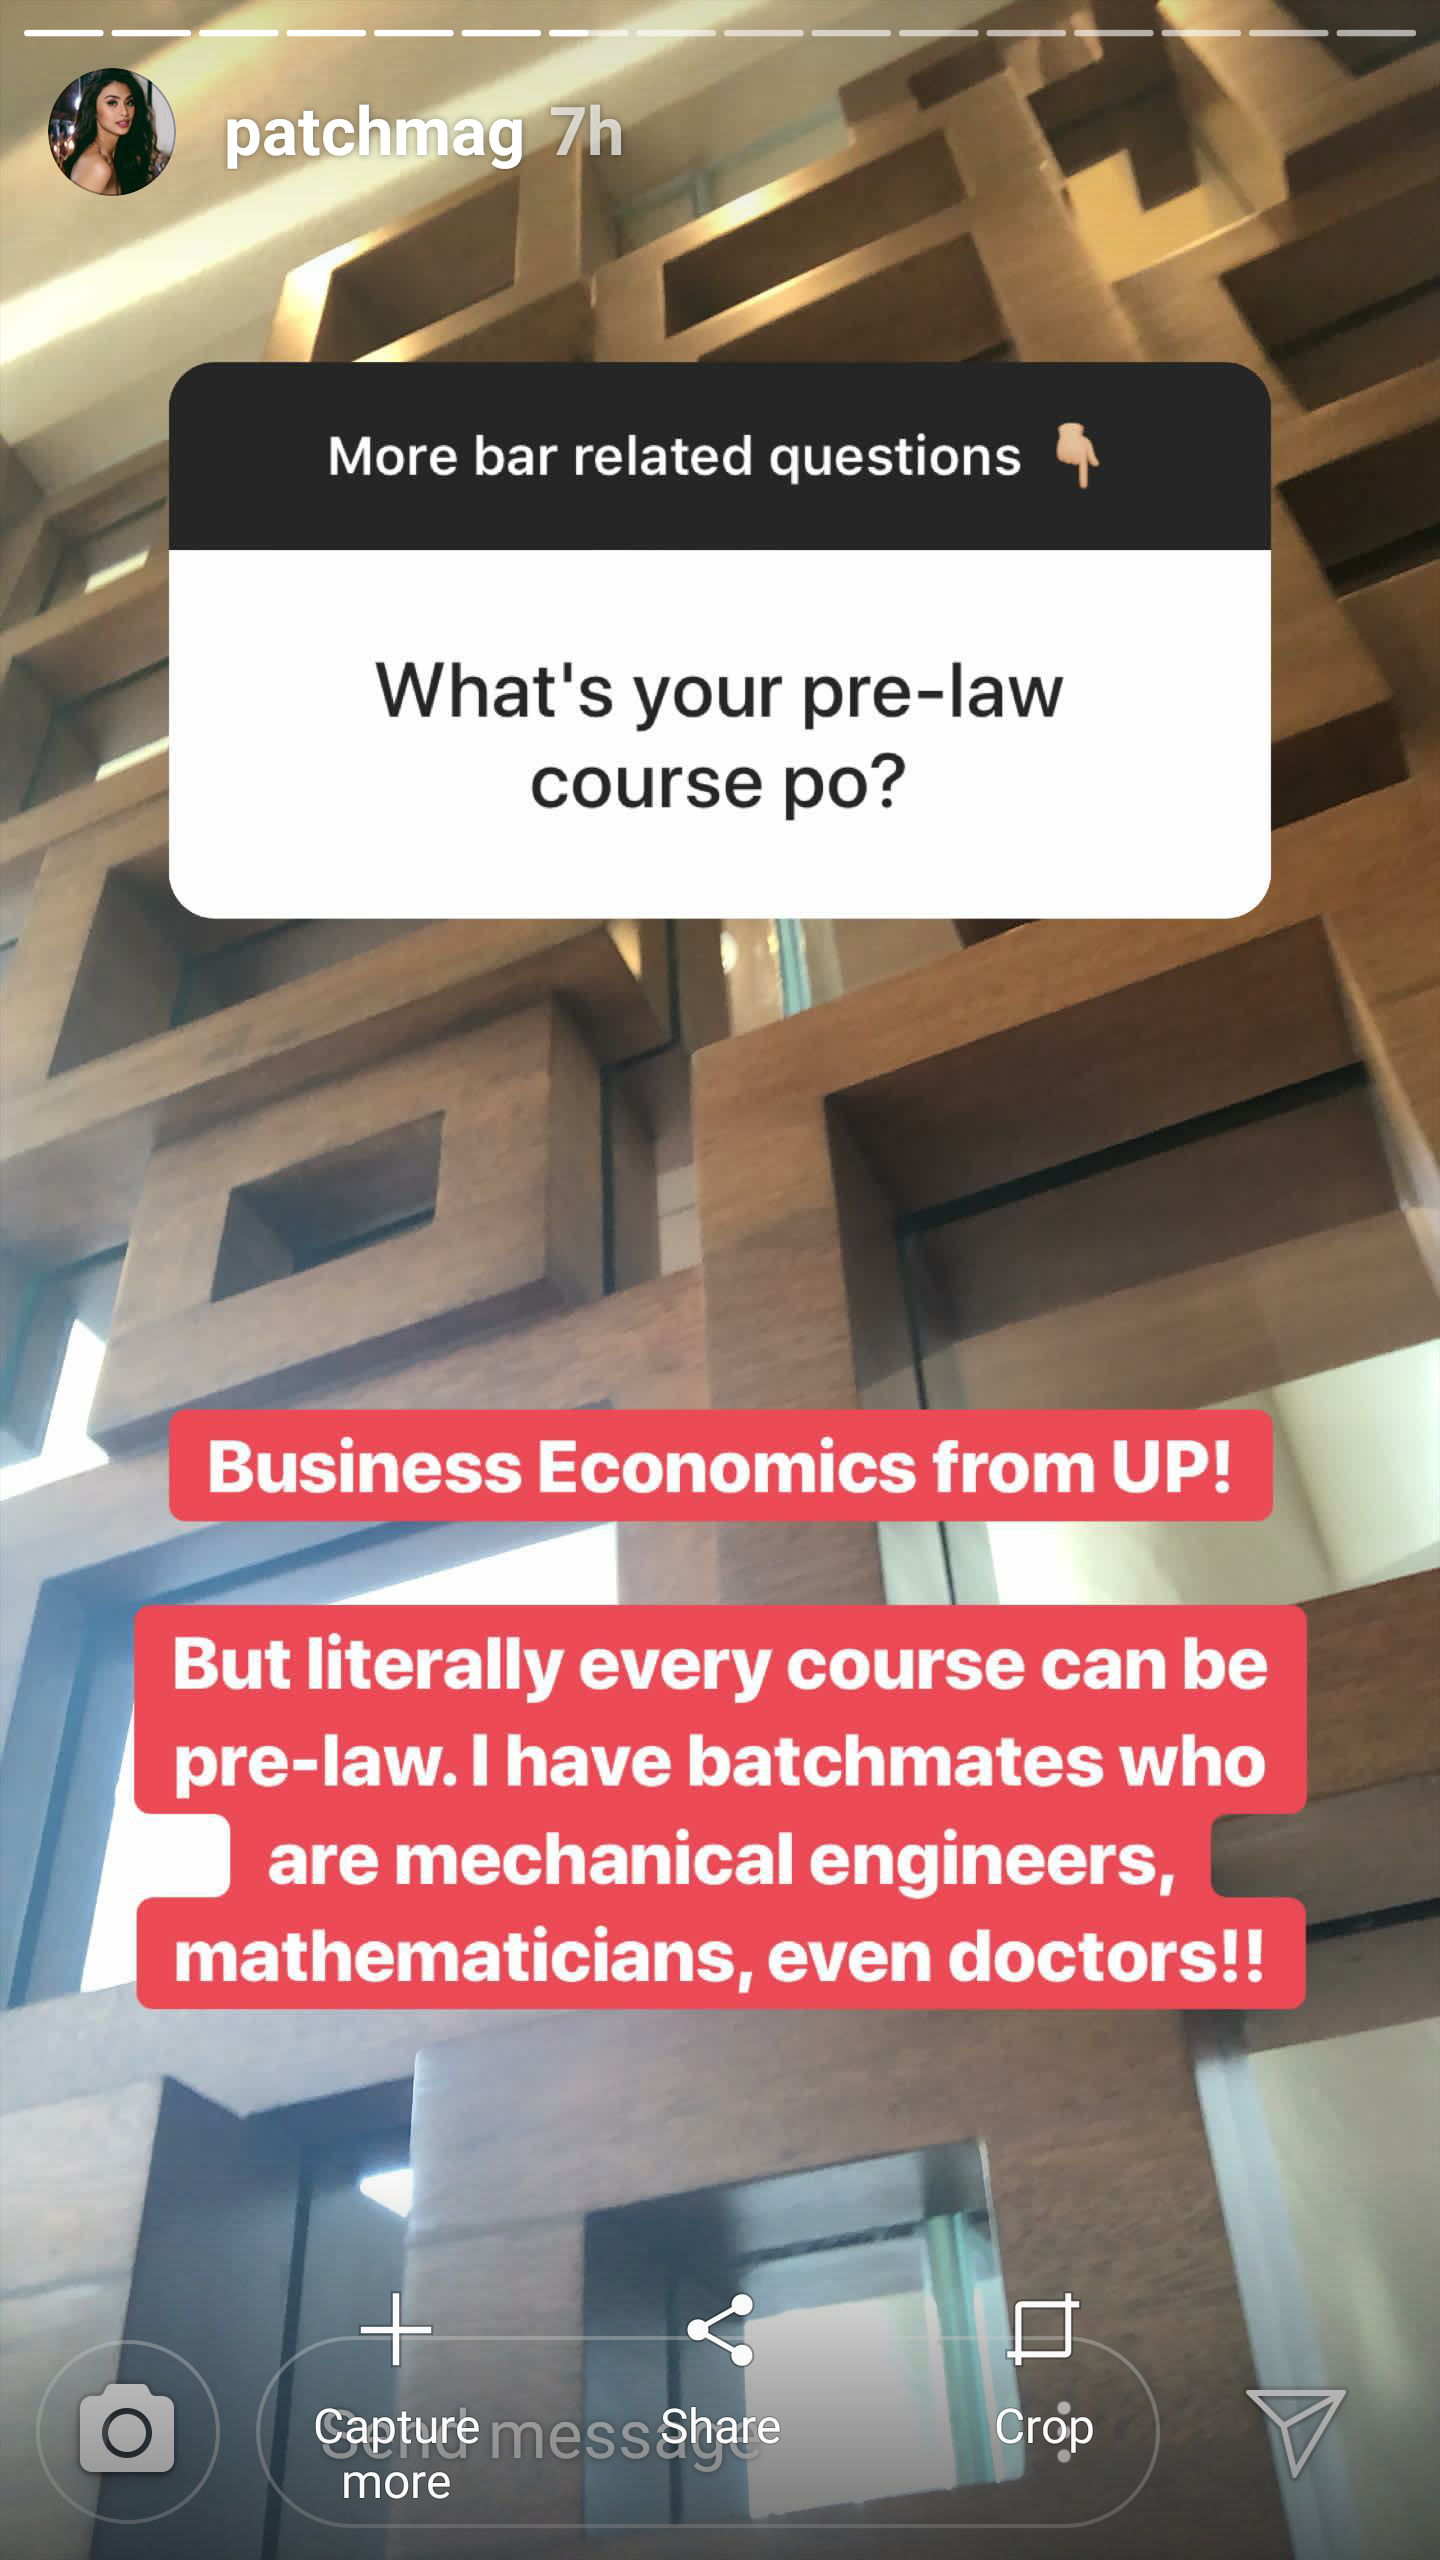 Adulting 101 Preparing For The Bar Exam According To Patch Magtanong